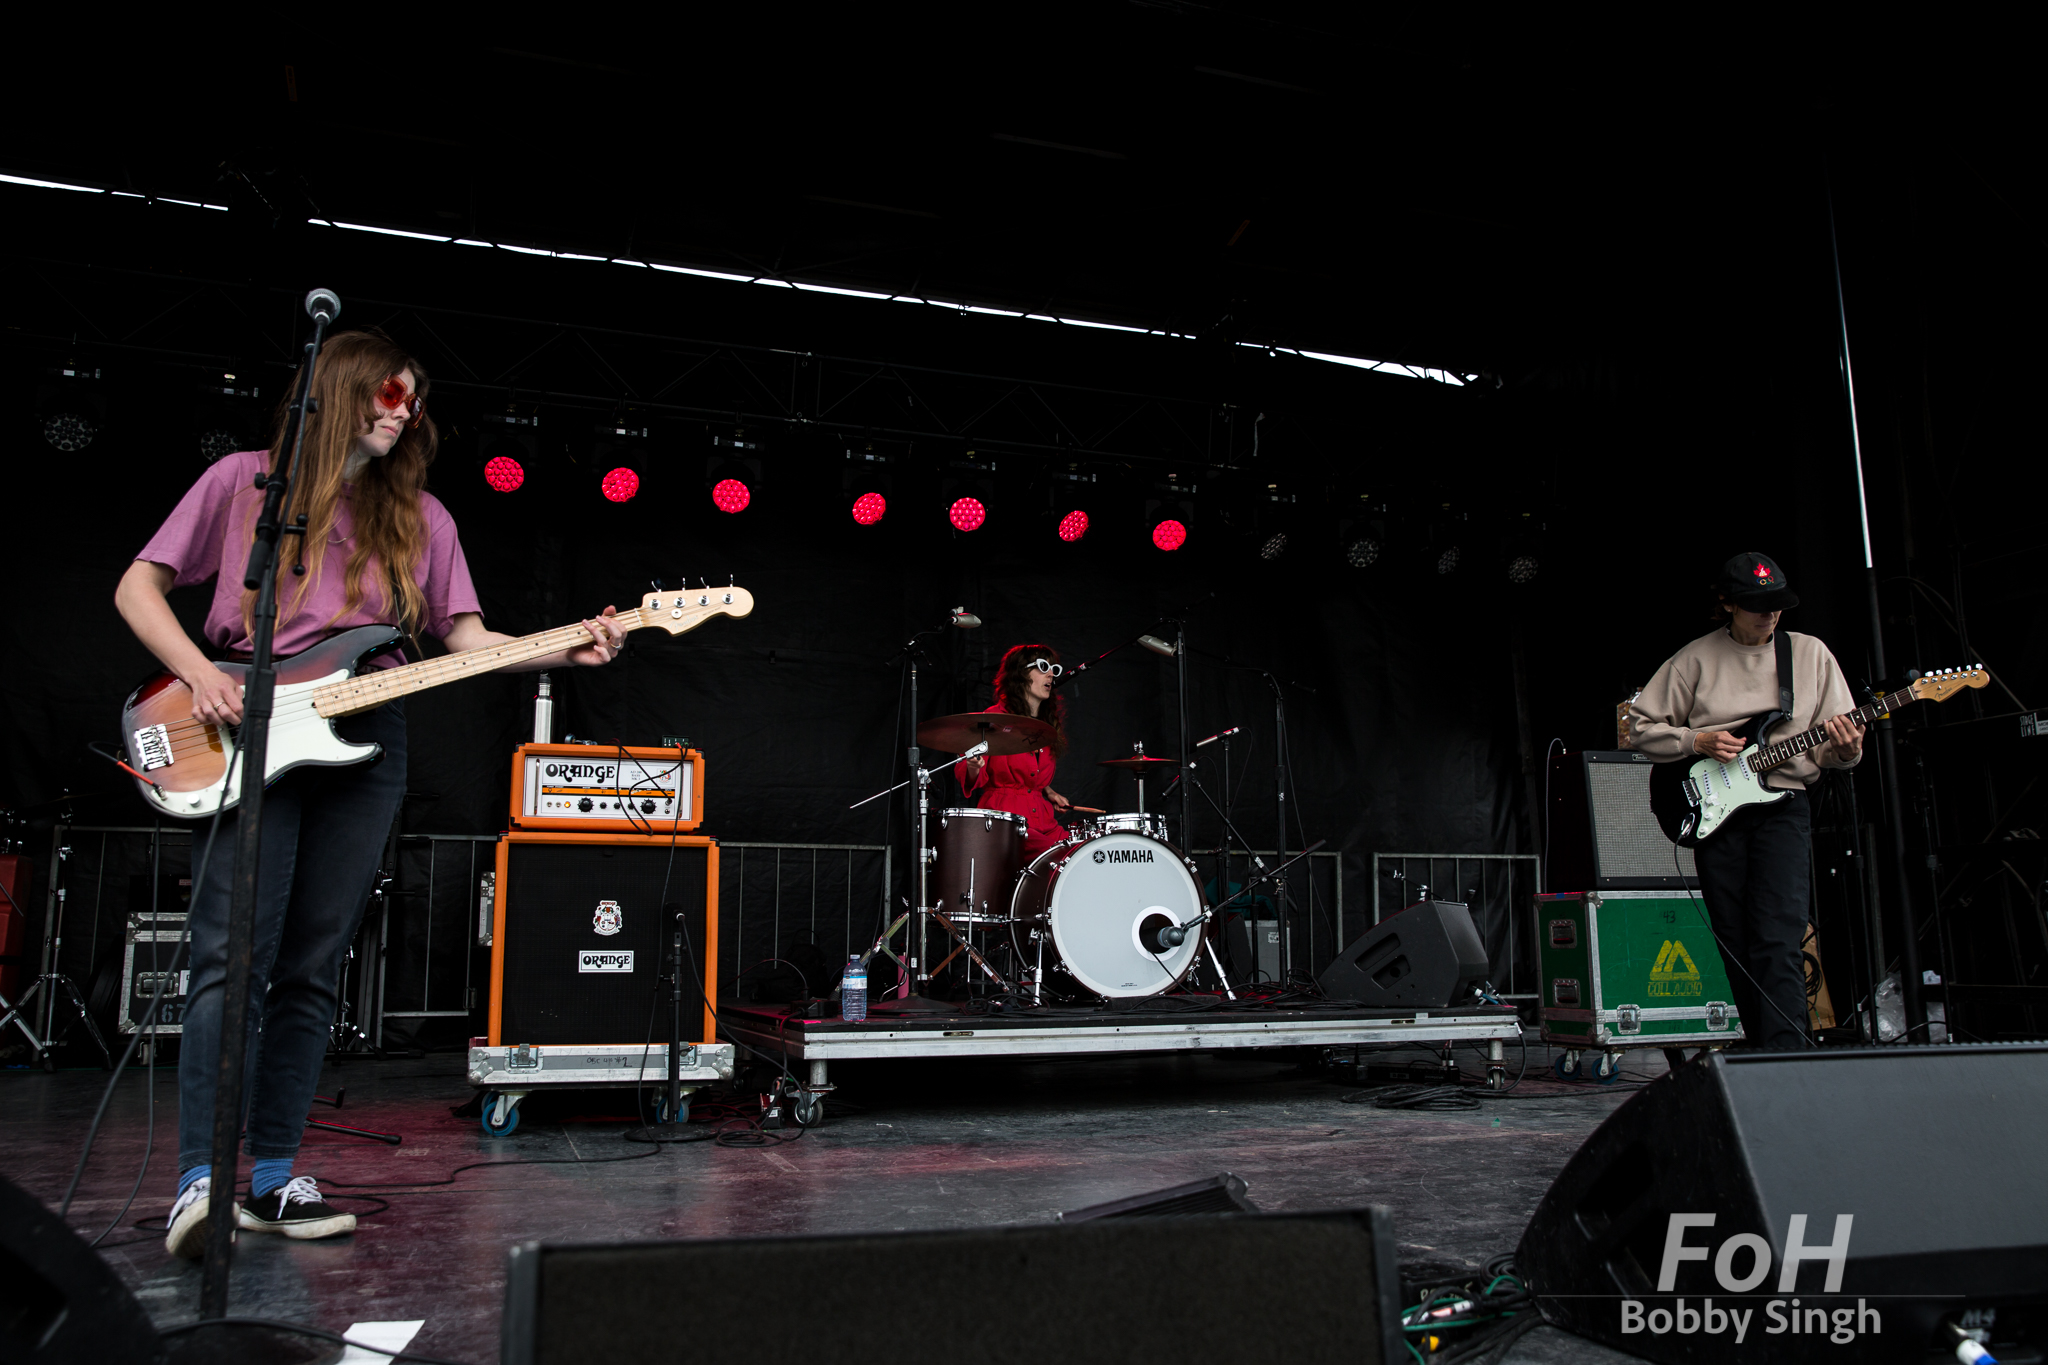 The Courtneys (Sydney Koke, Jen Twynn Payne and Courtney Loove) perform at the CBC Music Fest in Toronto, CANADA.